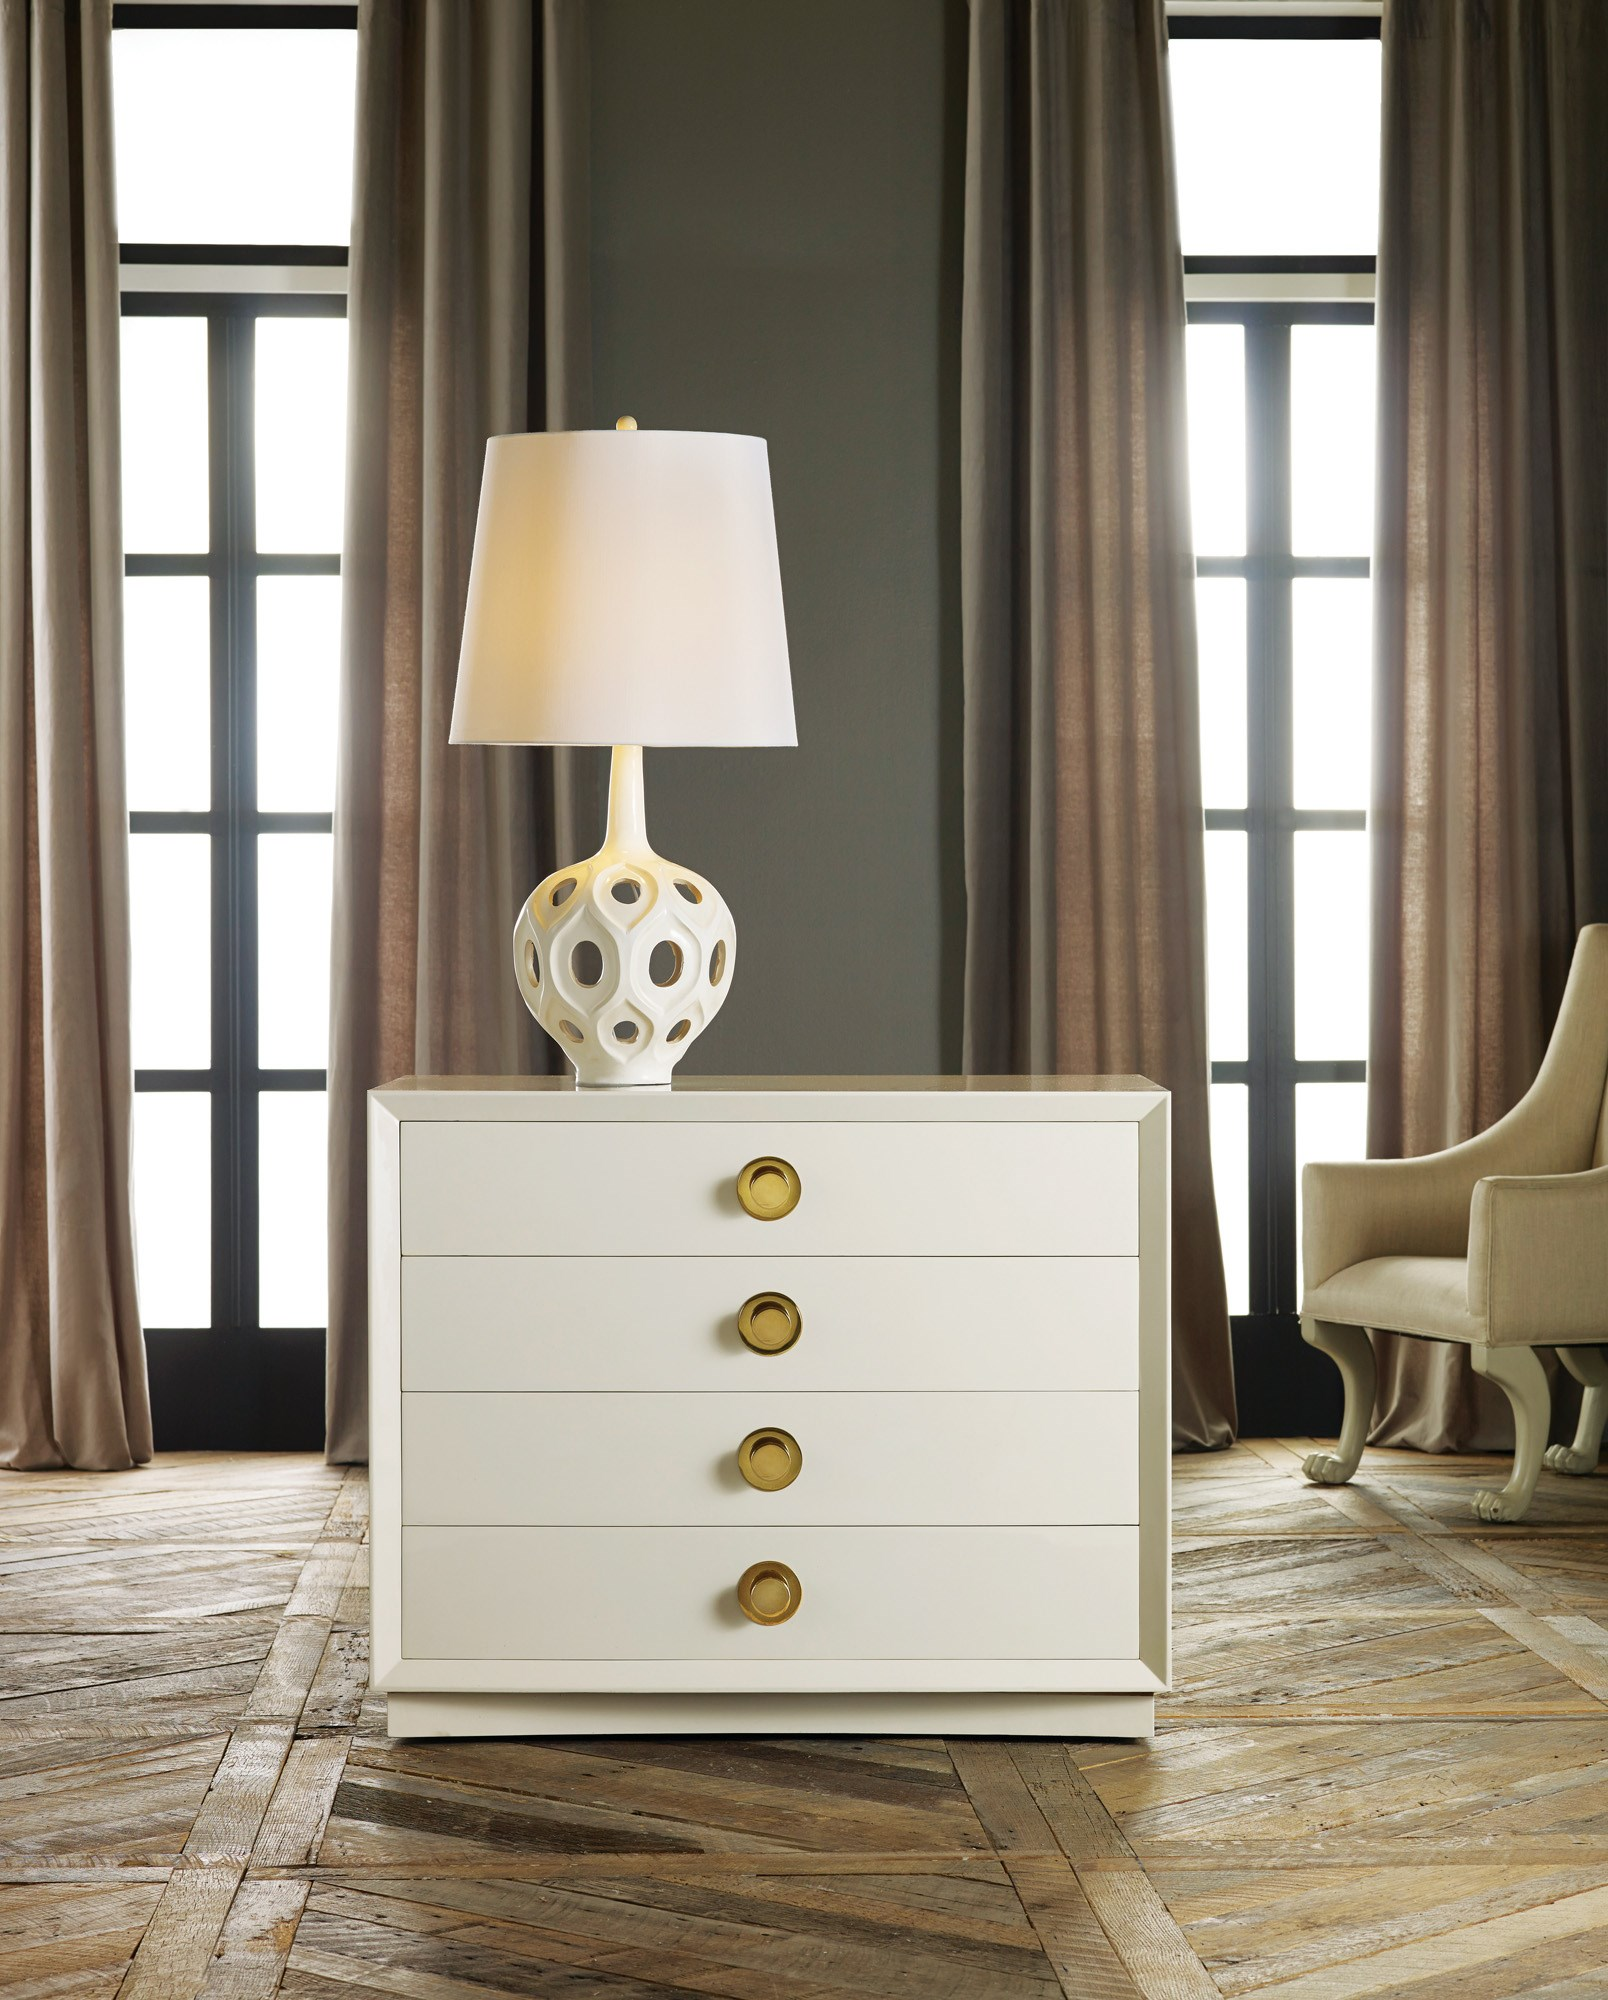 chests  english chests  british chests  contemporary chests  - mod chest mhf mhf